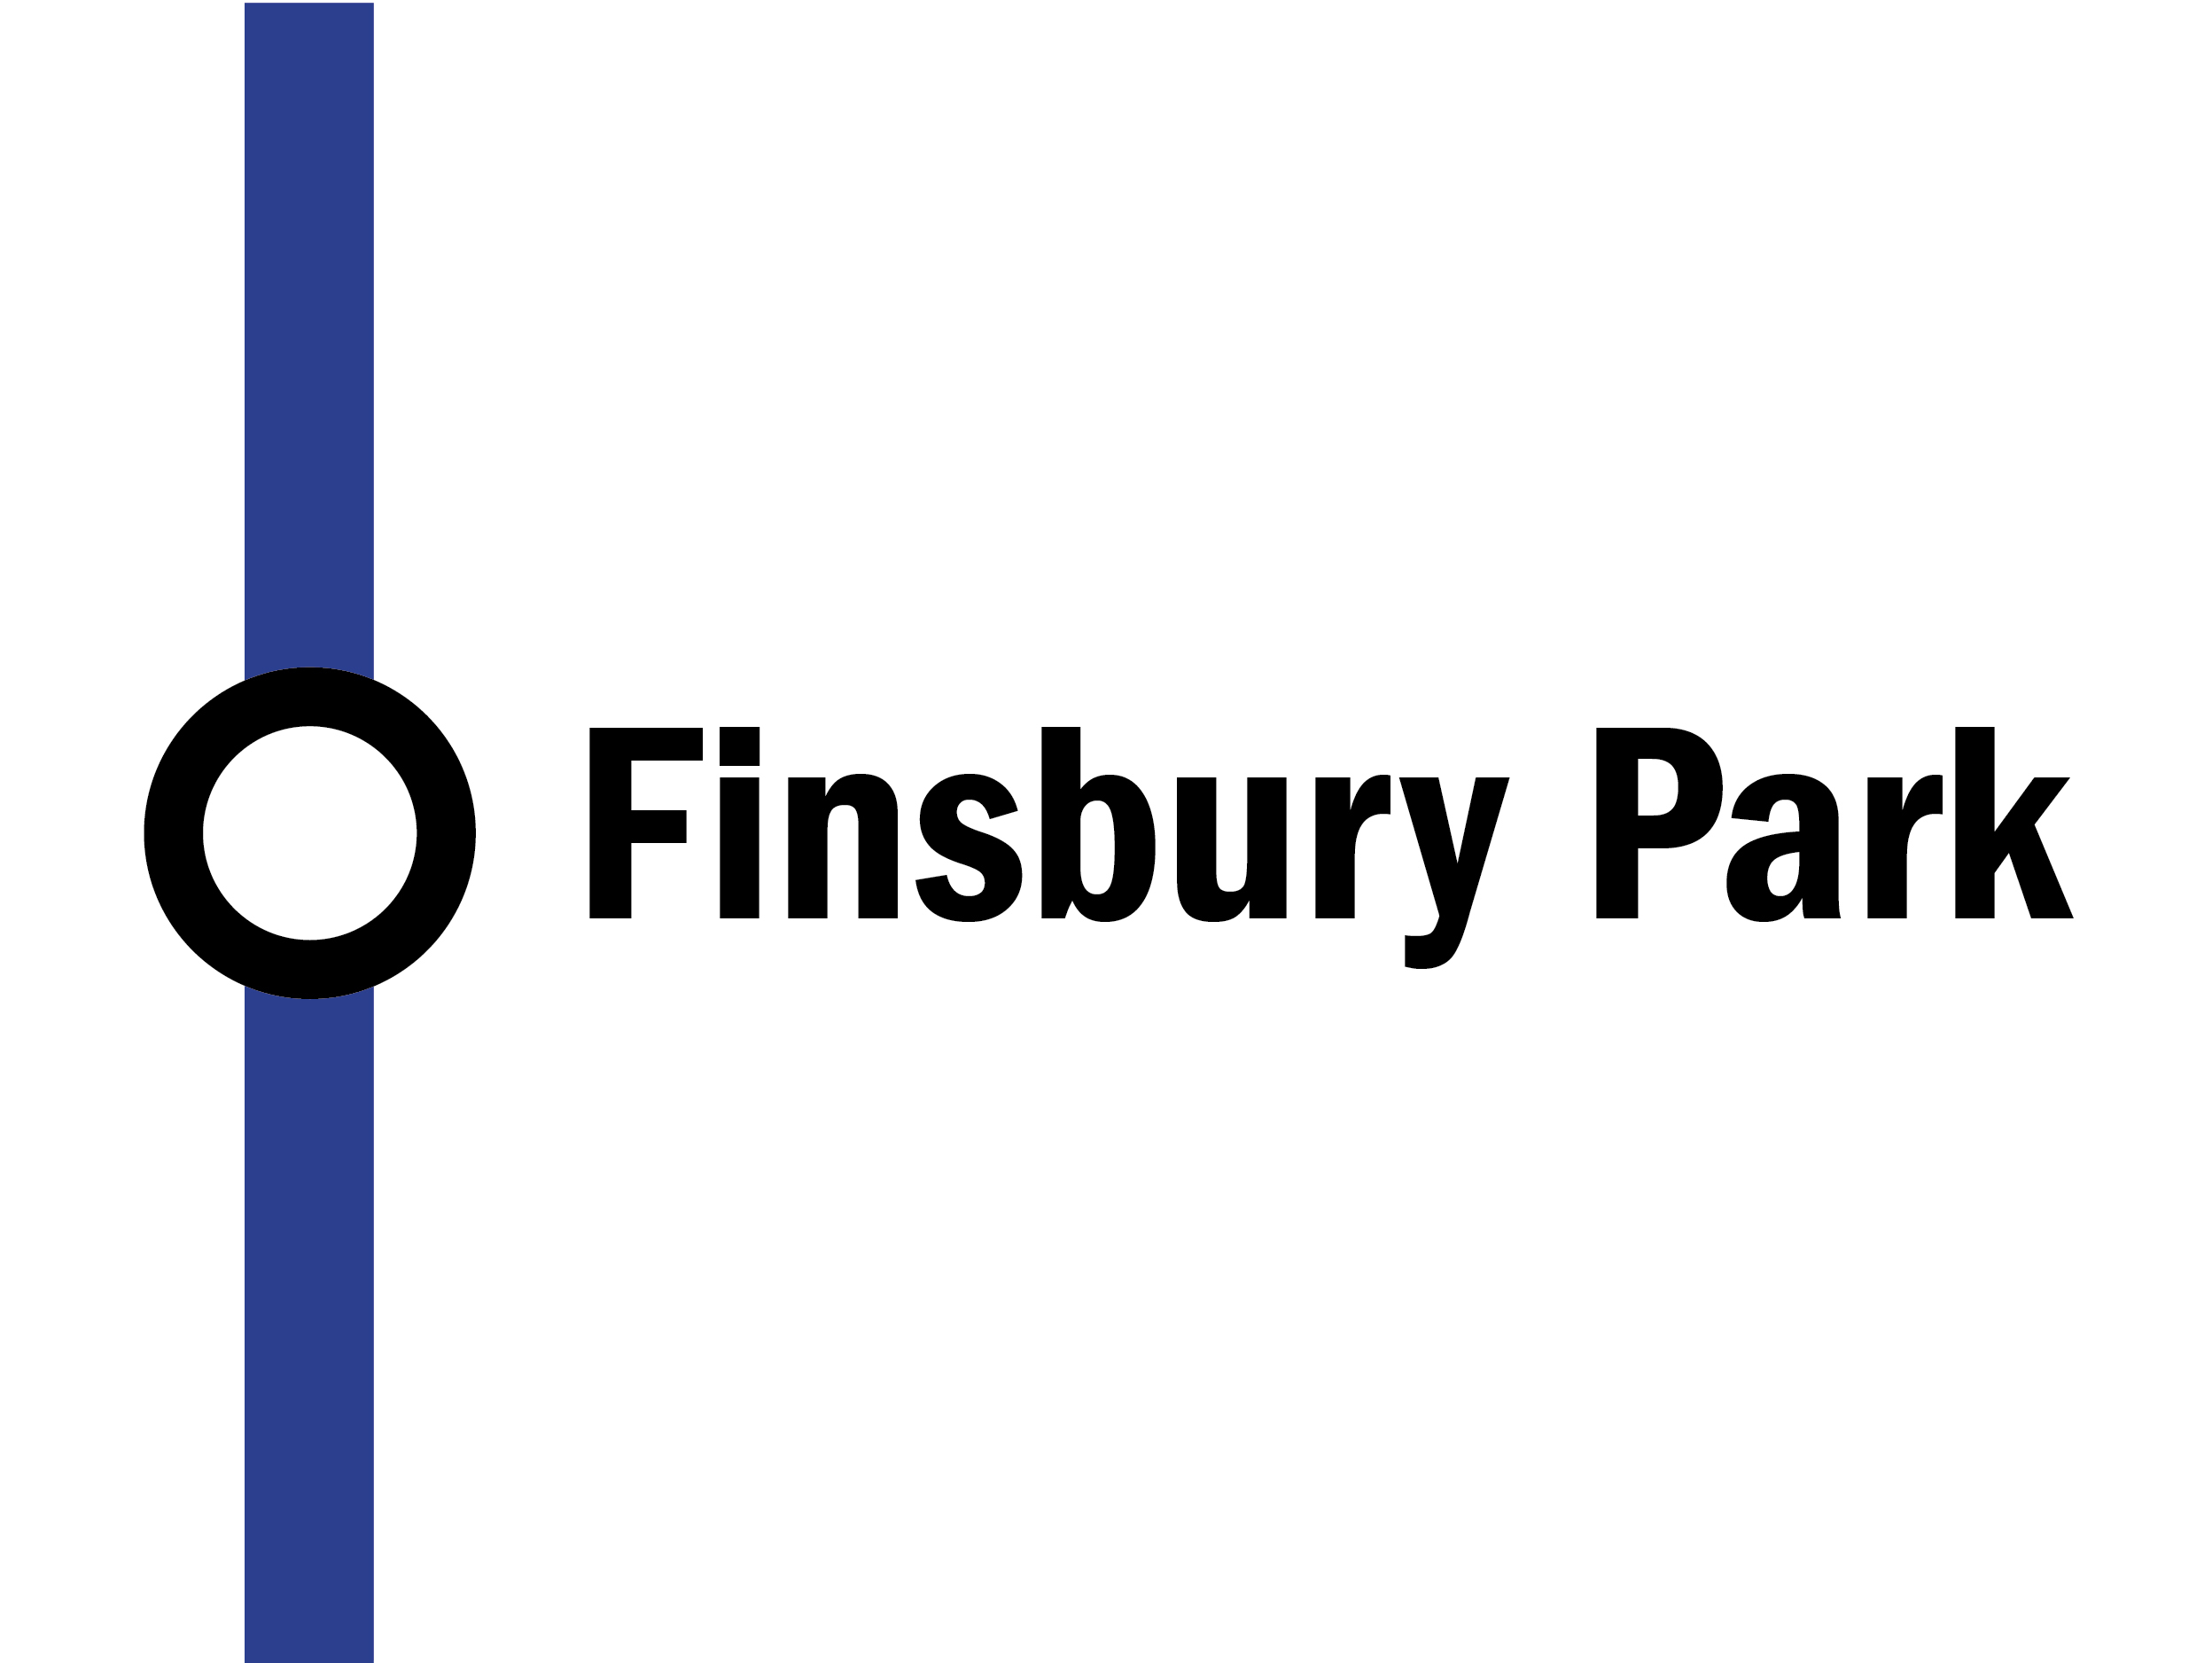 Finsbury Park, Piccadilly Line